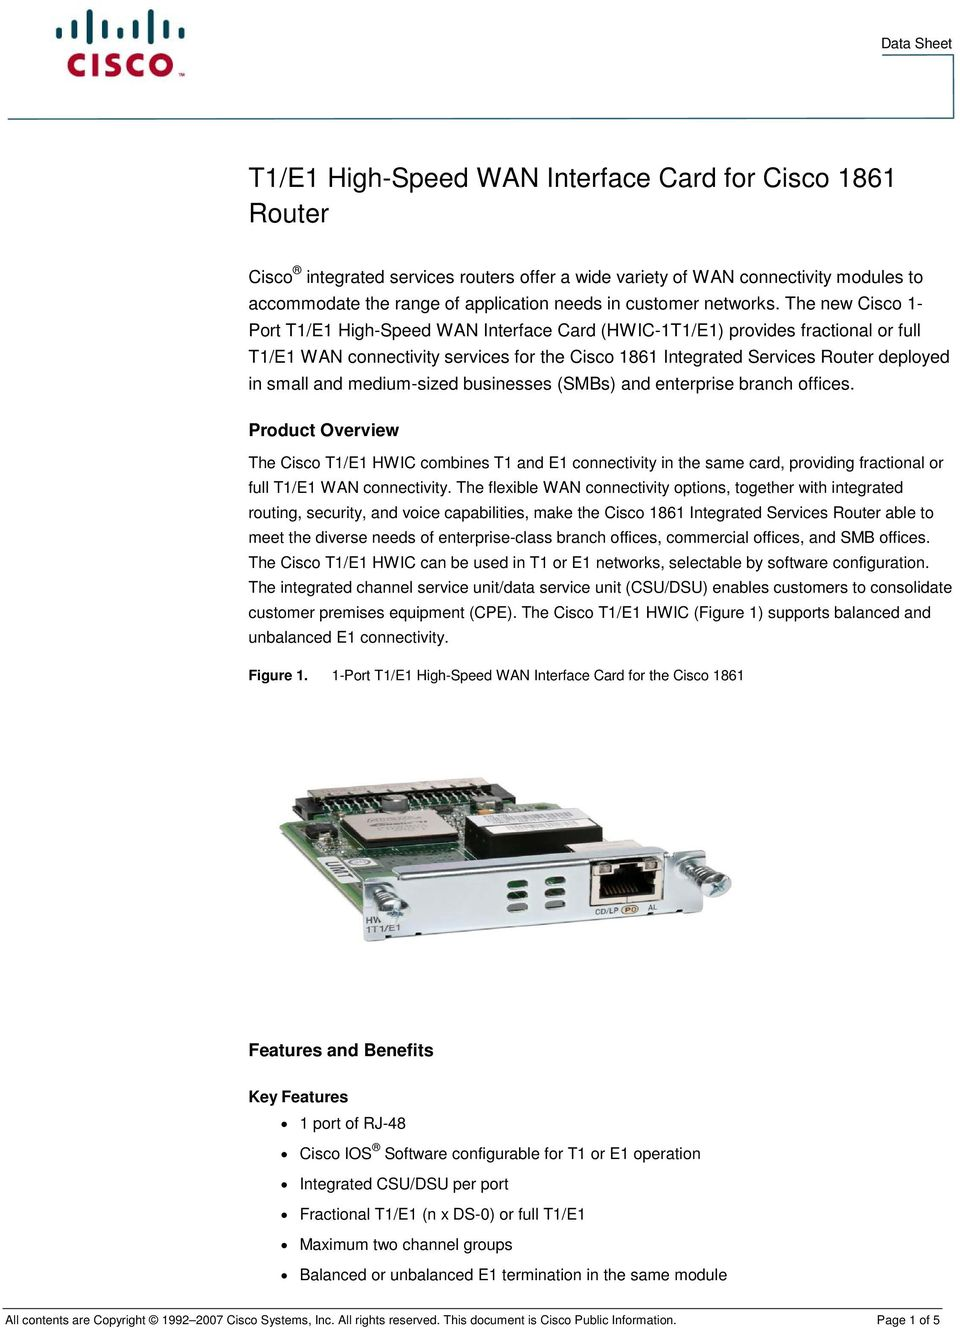 The new Cisco 1- Port T1/E1 High-Speed WAN Interface Card (HWIC-1T1/E1) provides fractional or full T1/E1 WAN connectivity services for the Cisco 1861 Integrated Services Router deployed in small and